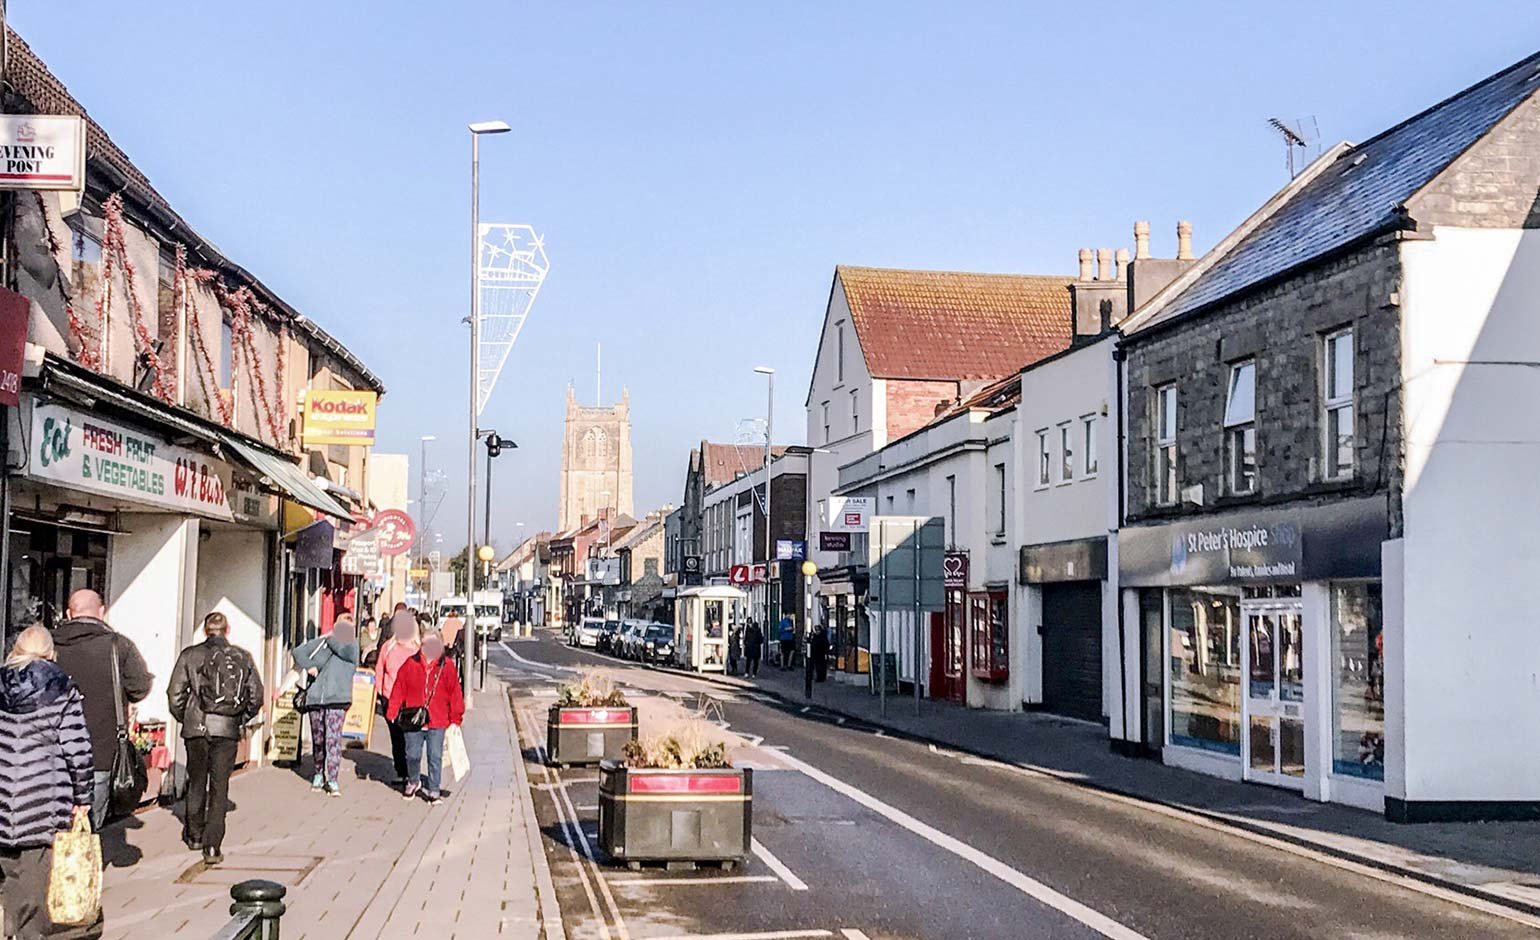 Temporary closure of Keynsham High Street planned to help social distancing